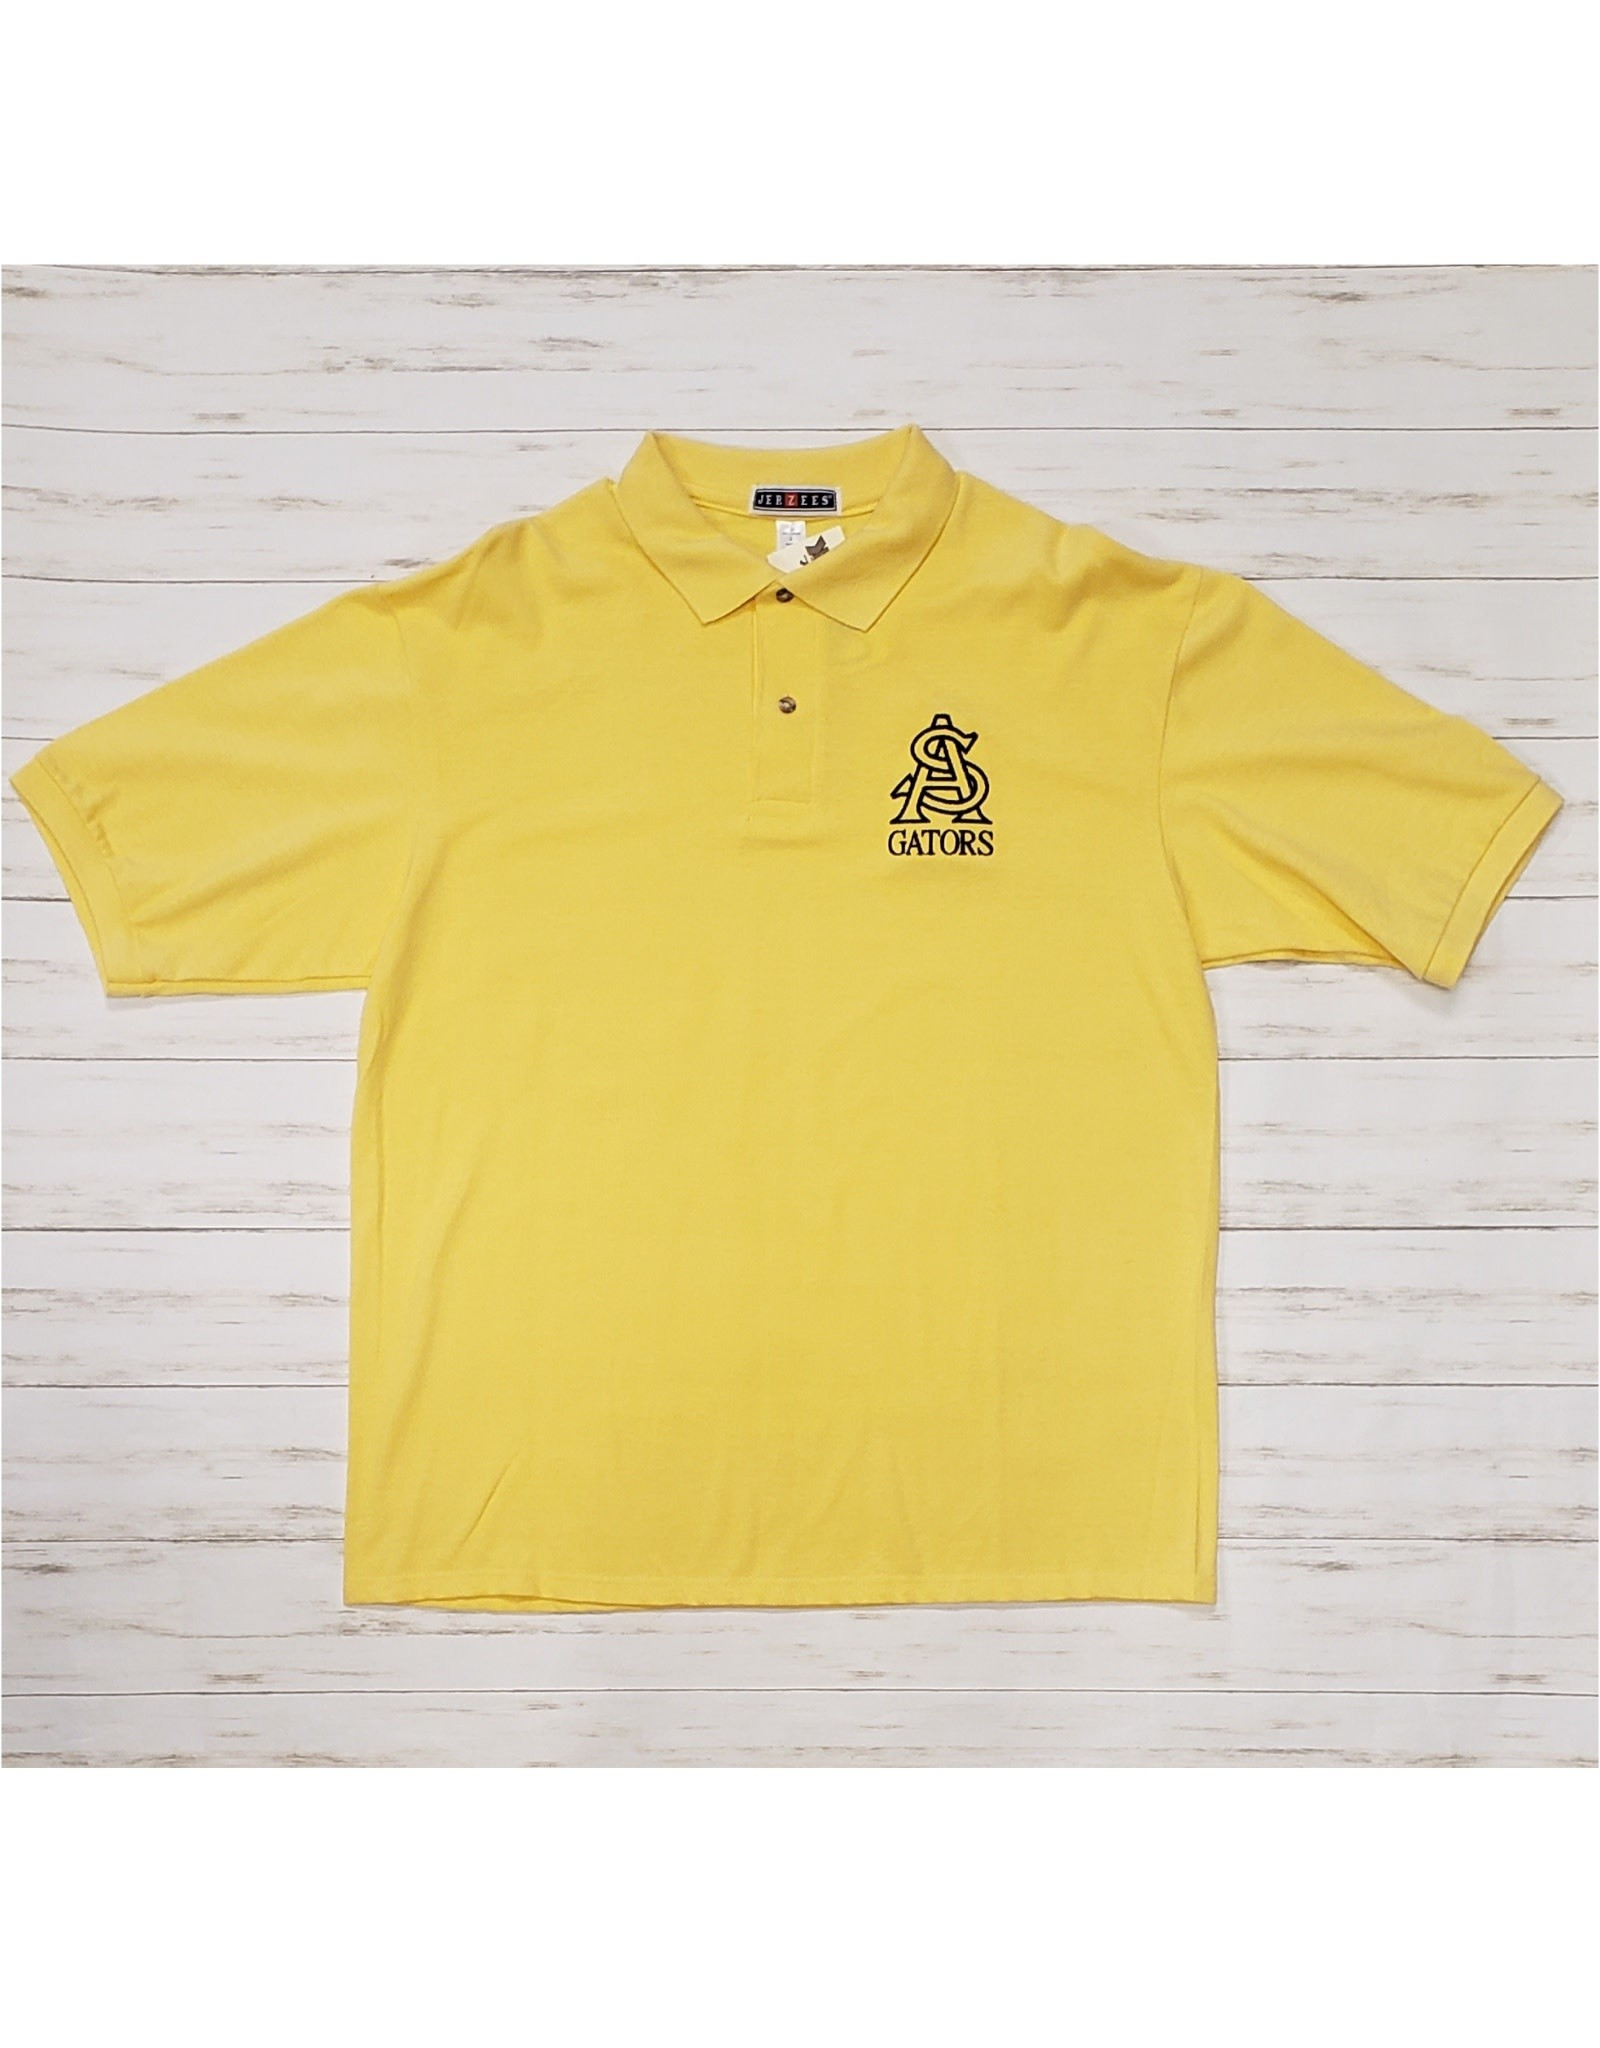 STA Embroidered Jerzees Polo Yellow (Large)